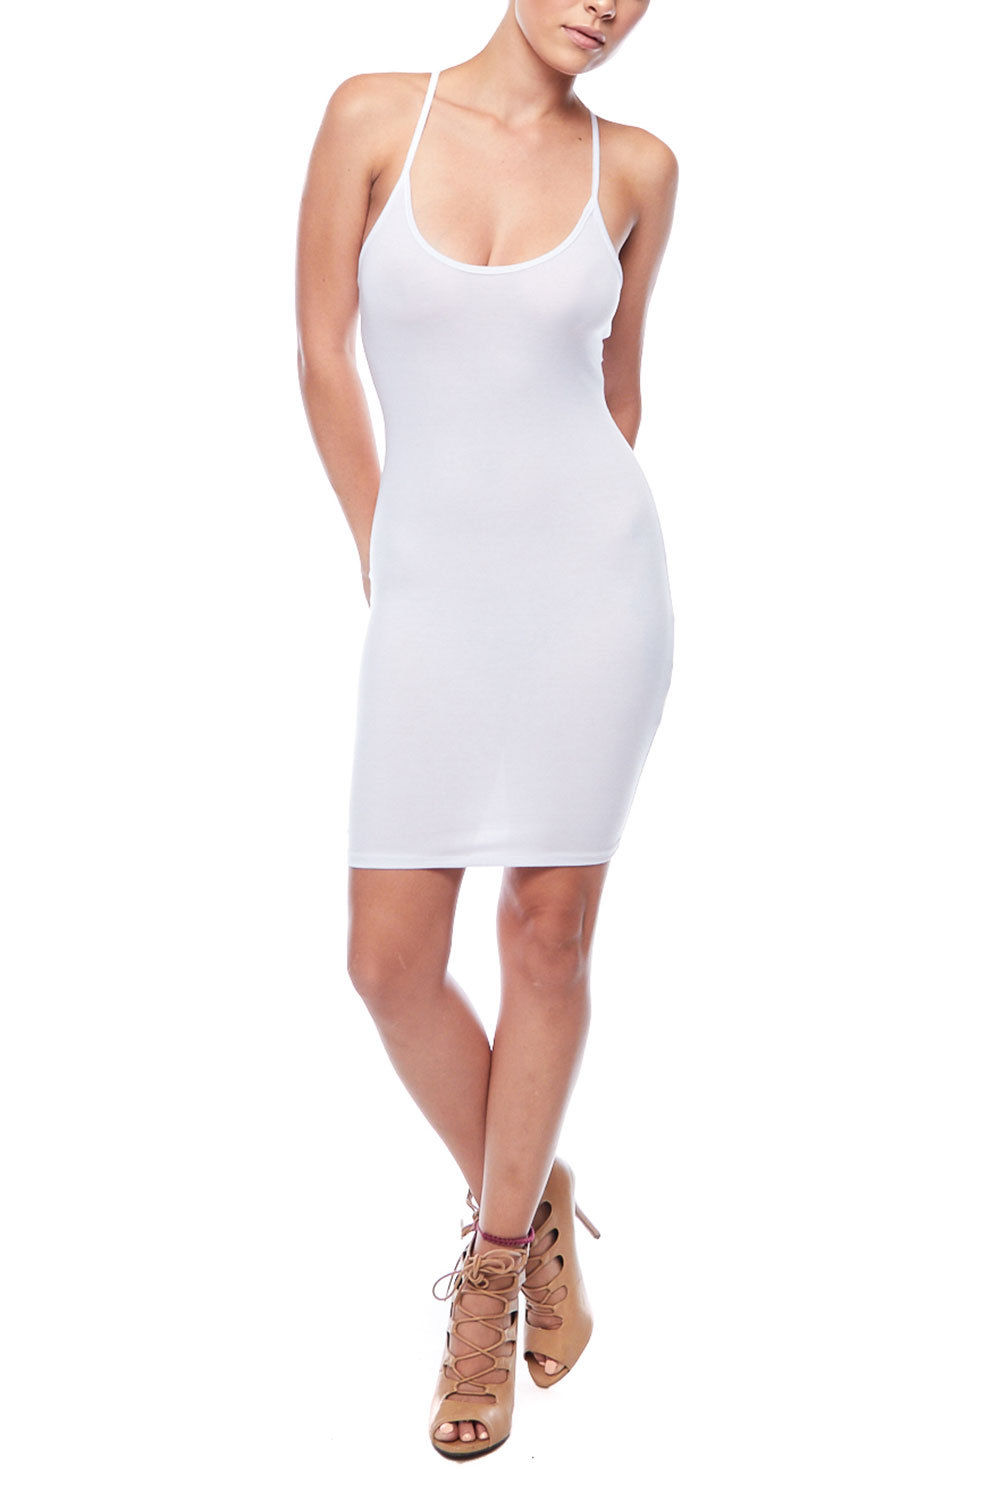 2a4af2625f26 Genx - Plain Spaghetti Strap Mini Dress-M-White - Walmart.com